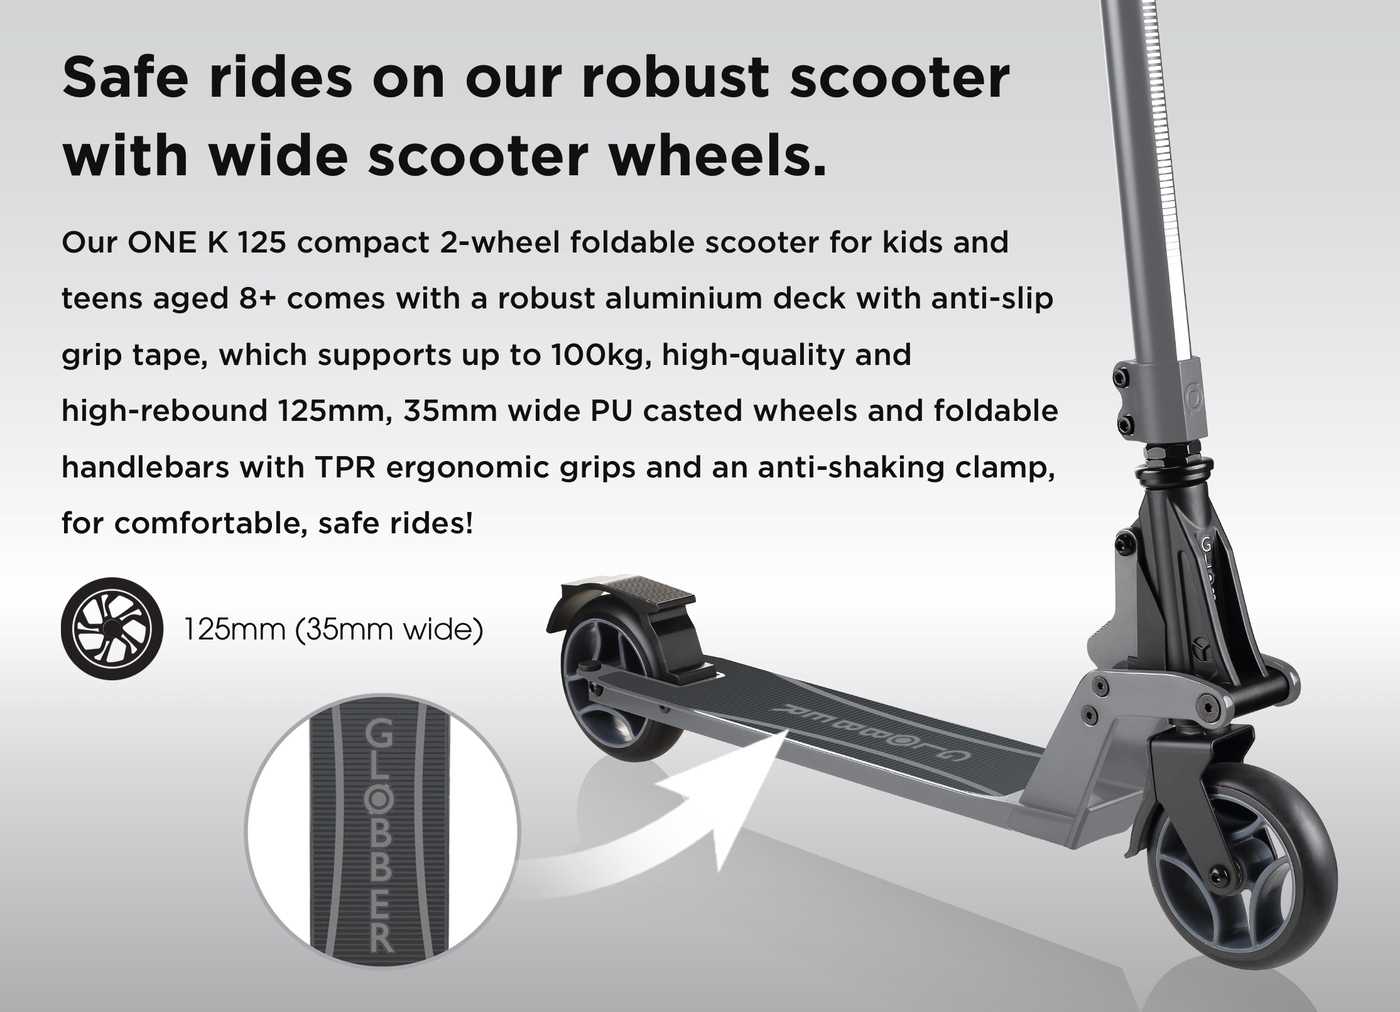 Safe rides on our robust scooter with wide scooter wheels. Our ONE K 125 compact 2-wheel foldable scooter for kids and teens aged 8+ comes with a robust aluminium deck with anti-slip grip tape, which supports up to 100kg, high-quality and high-rebound 125mm, 35mm wide PU casted wheels and foldable handlebars with TPR ergonomic grips and an anti-shaking clamp, for comfortable, safe rides!